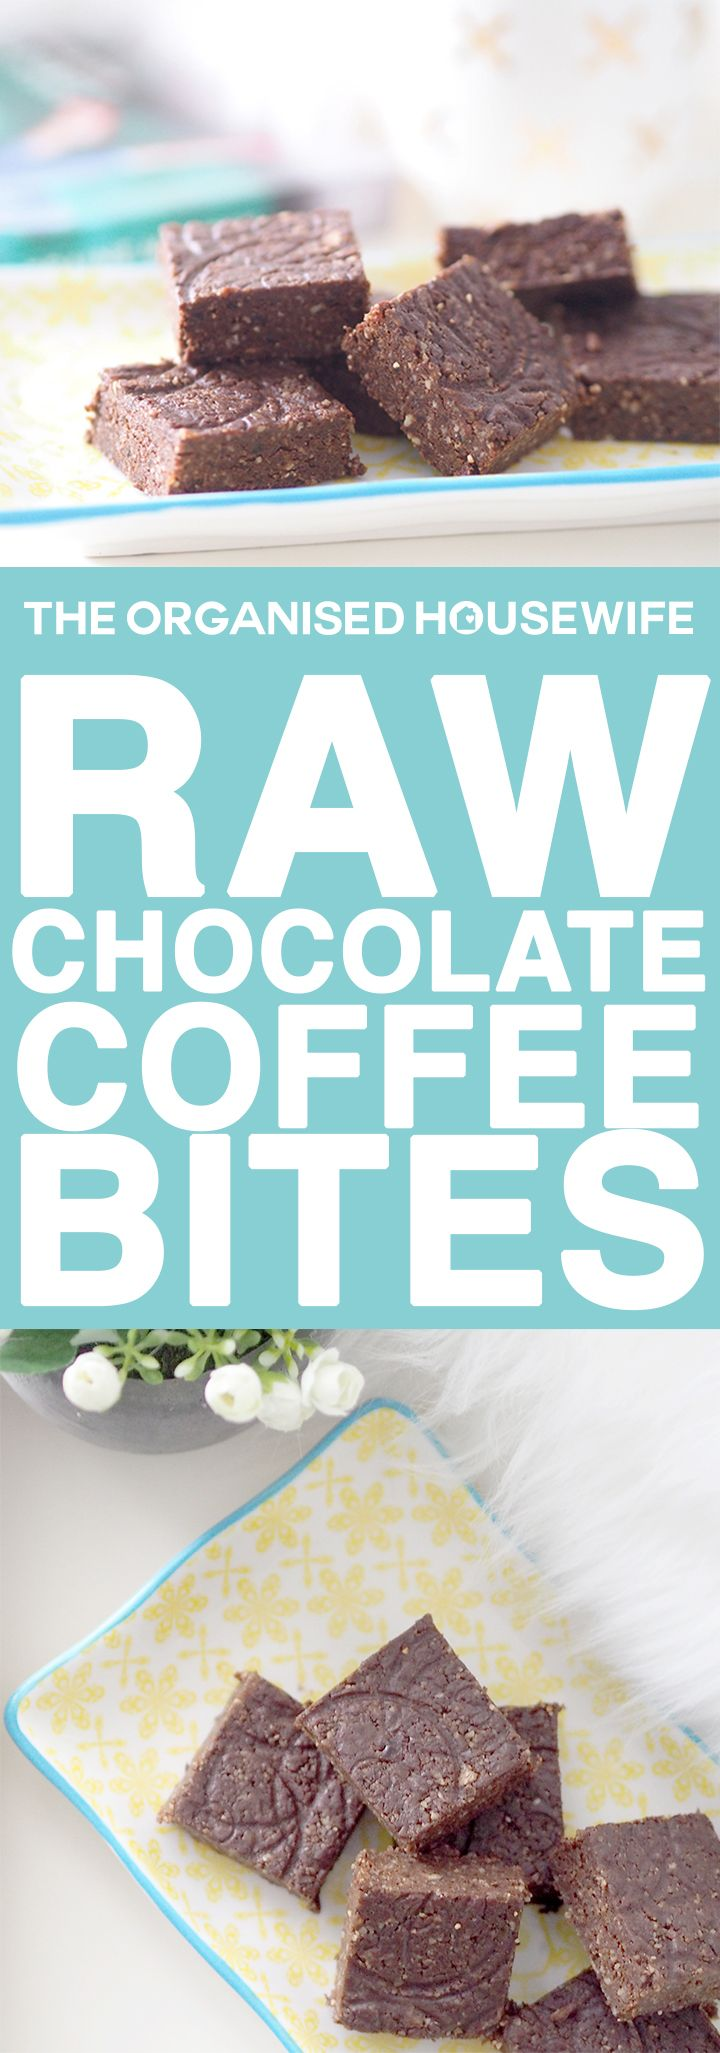 Looking for a healthy snack idea? These Raw chocolate and coffee bites are delicious and so easy to make. A perfect go to snack.